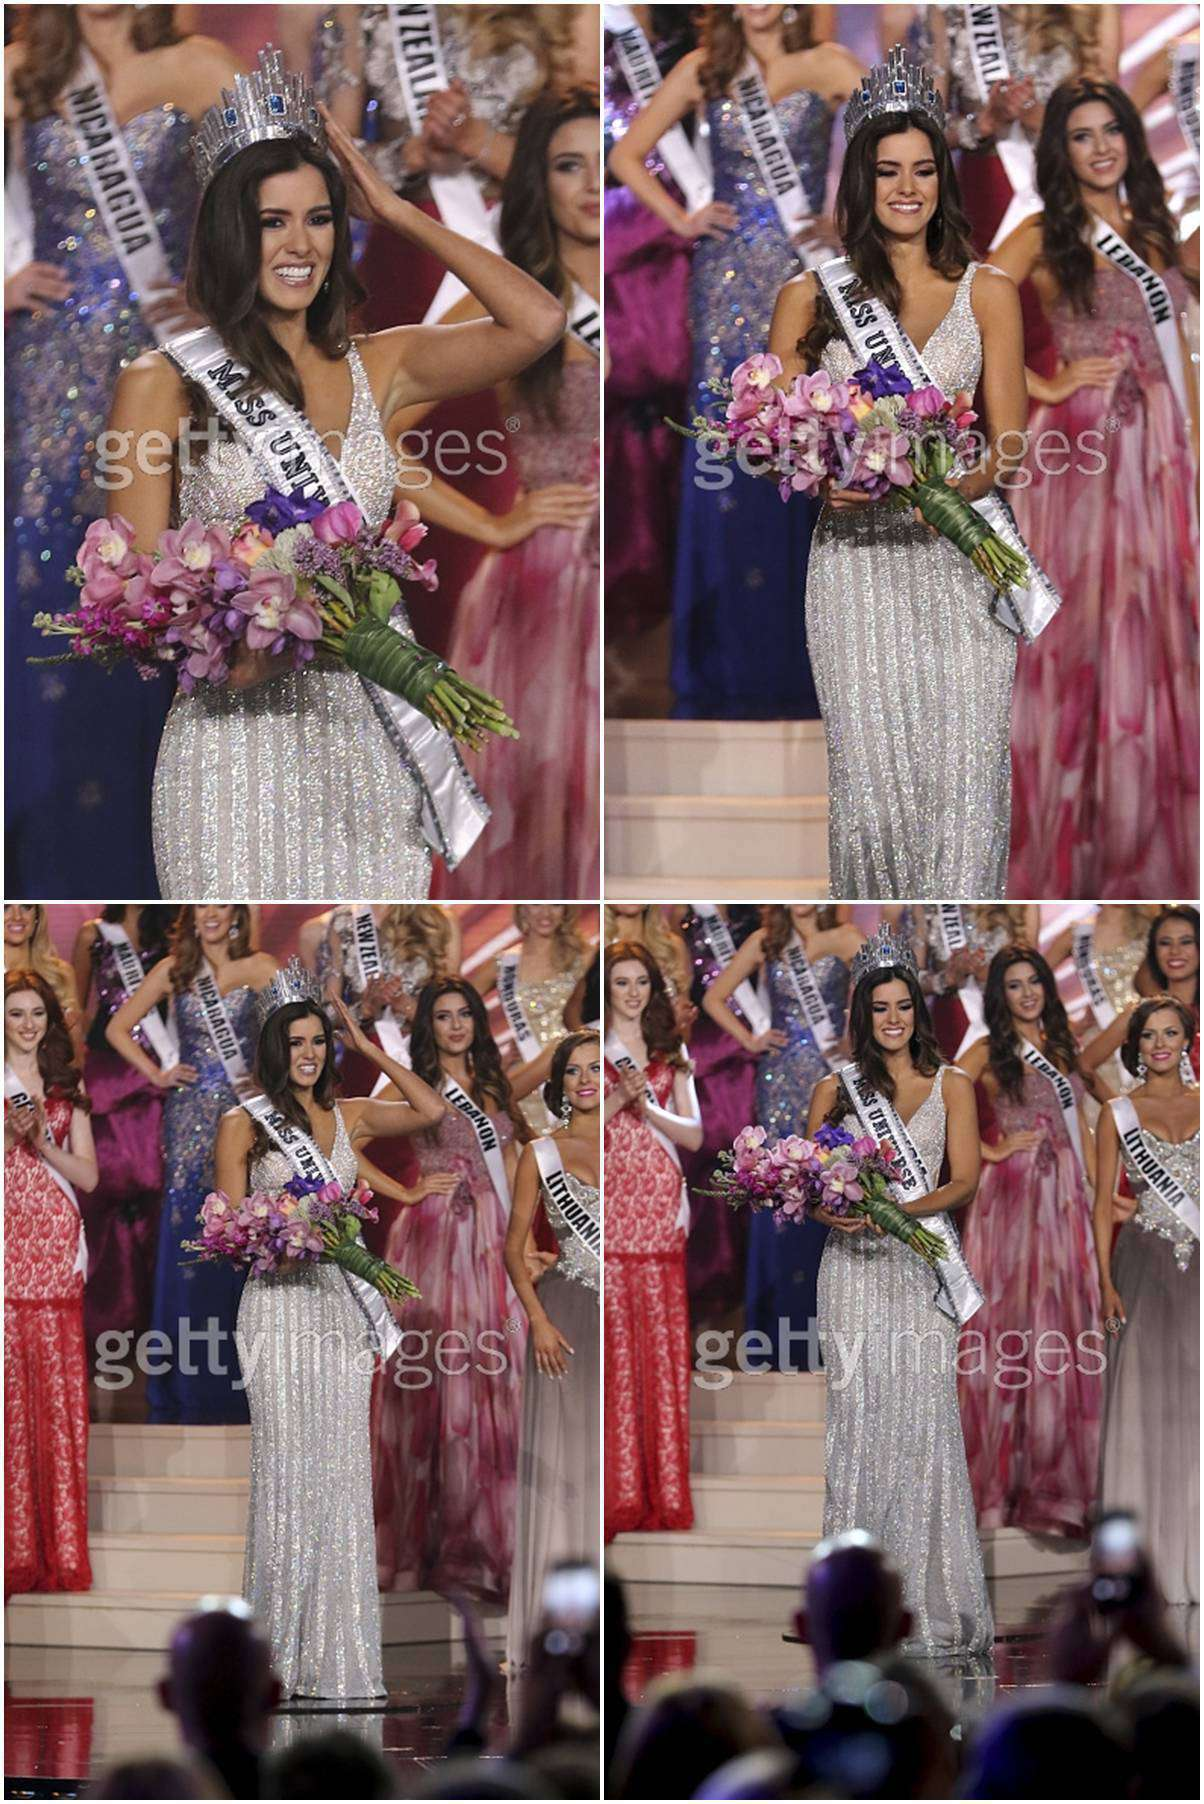 ♔ MISS UNIVERSE® 2014 - Official Thread- Paulina Vega - Colombia ♔ 20570919d8f9b0375acb484878466efeafb878d0